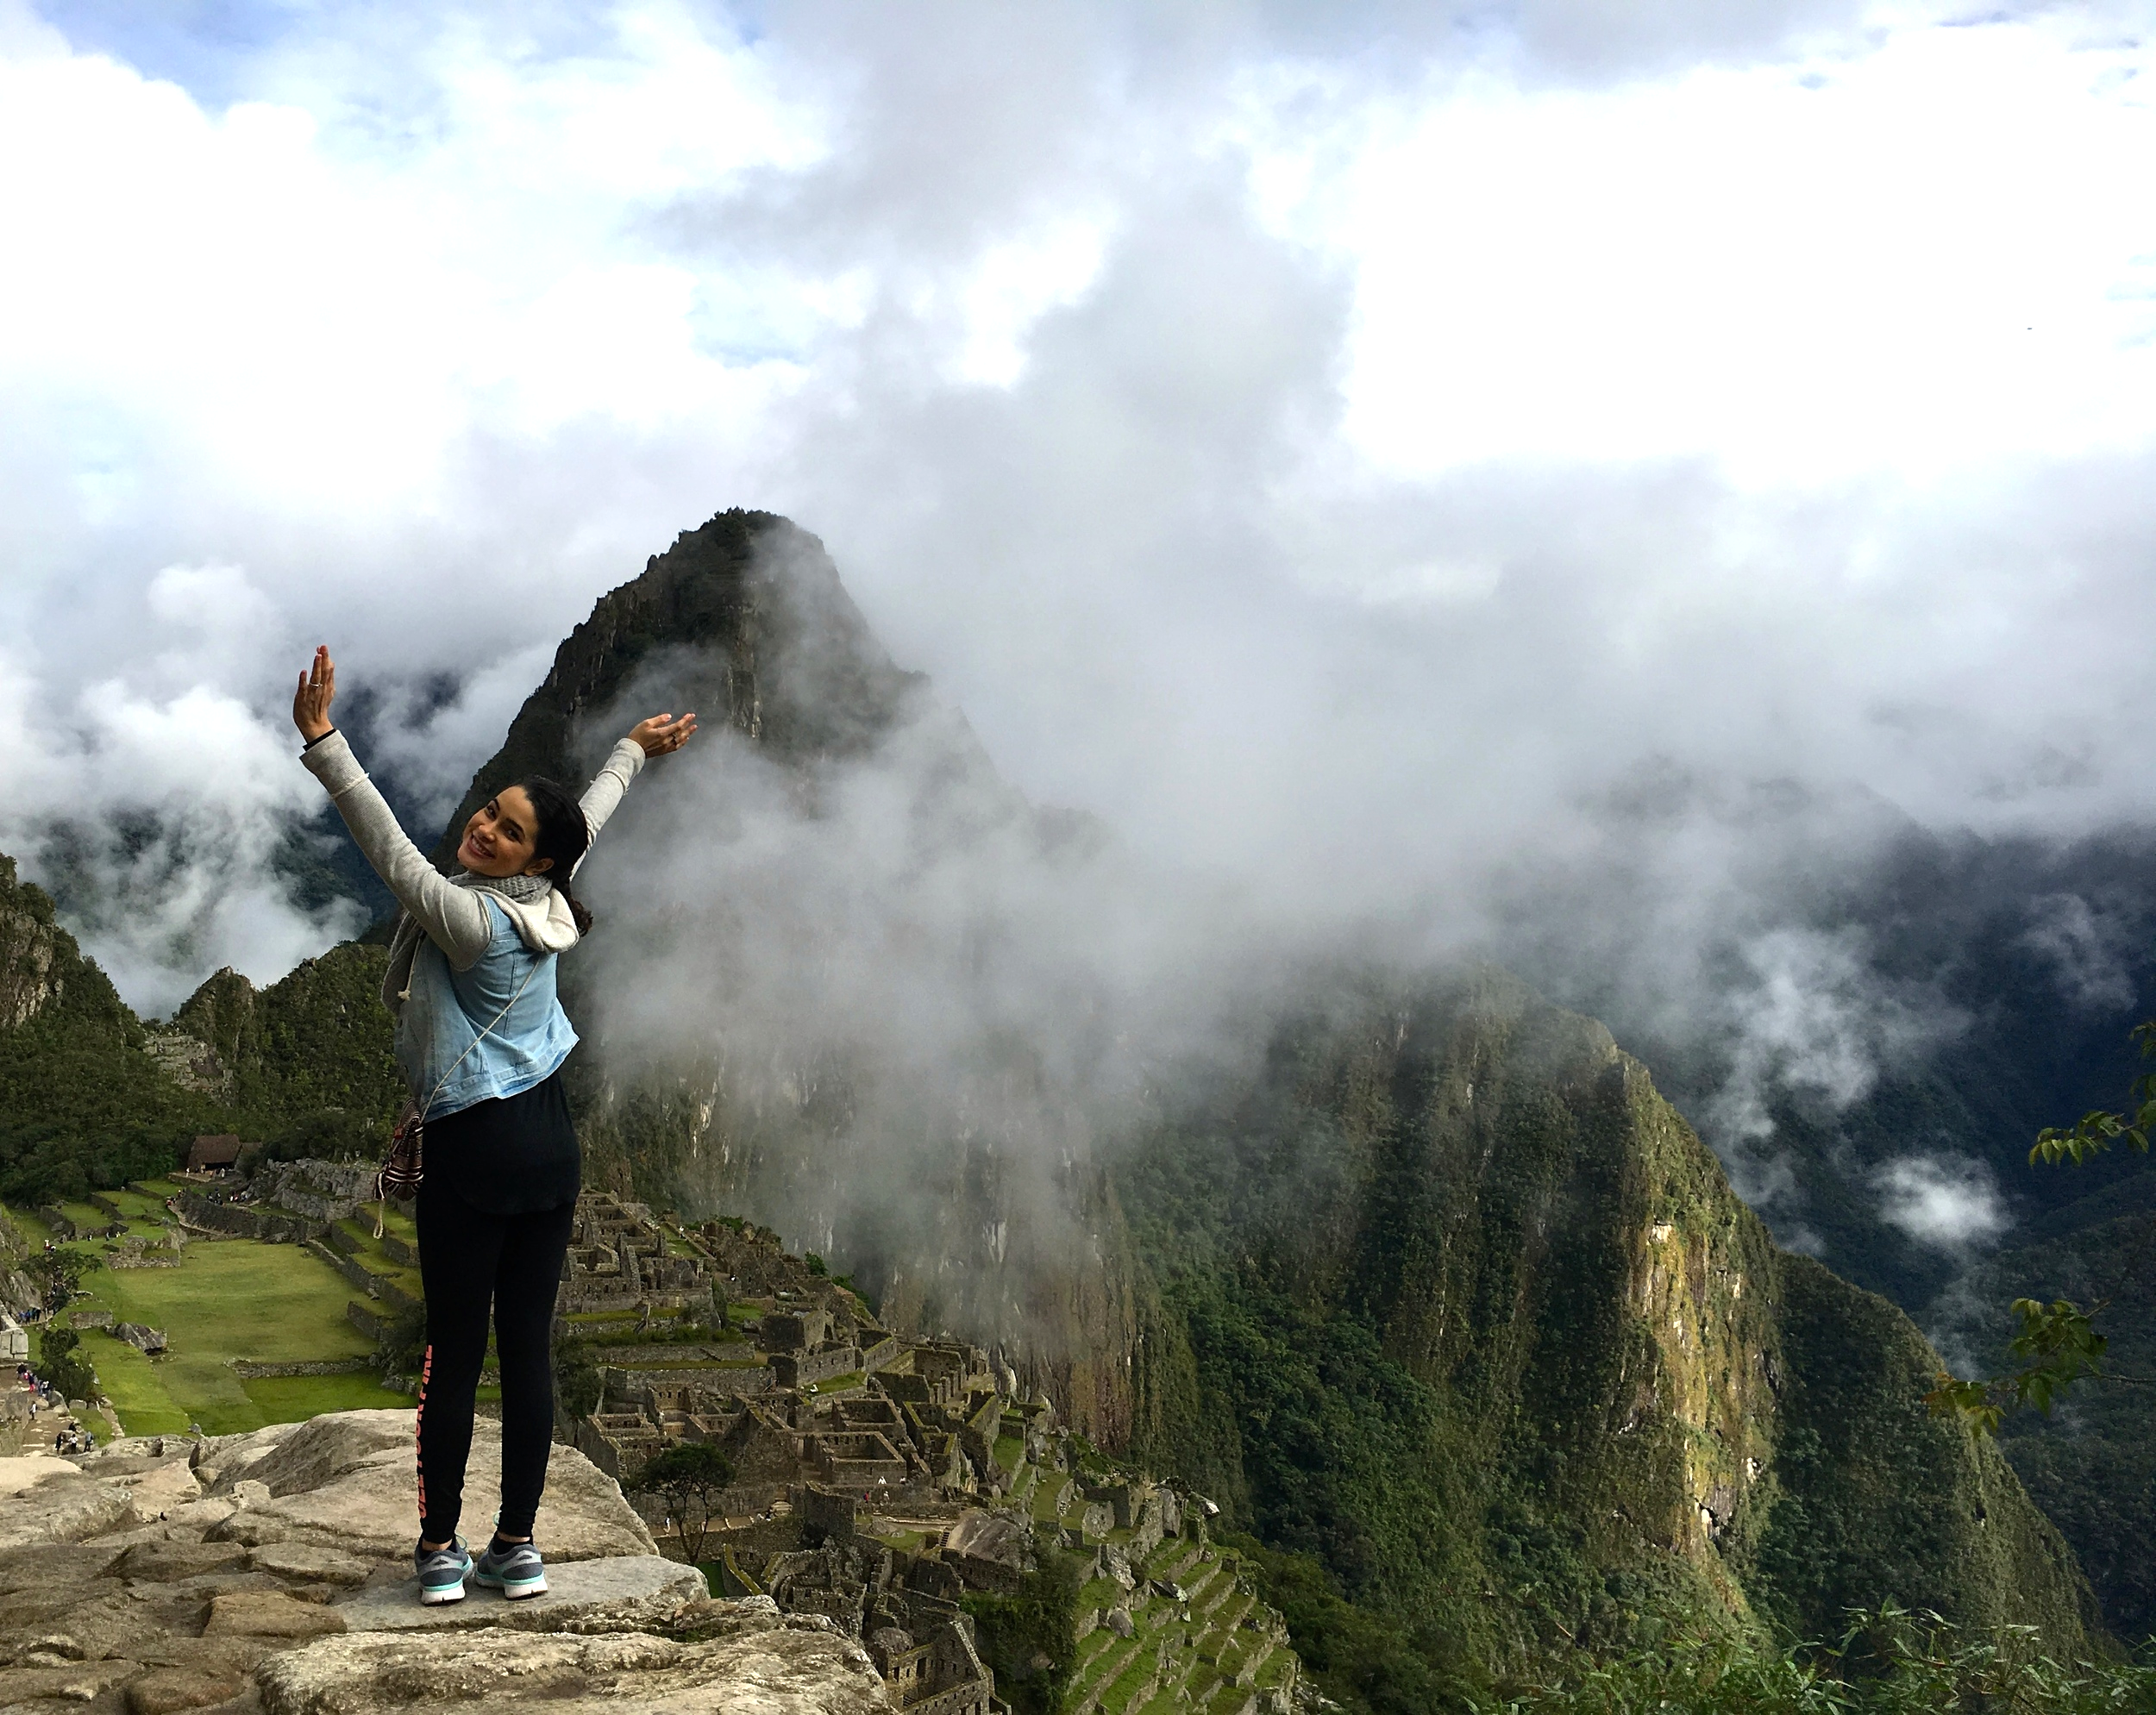 Me, choosing to be happy on the top of Machu Picchu :)